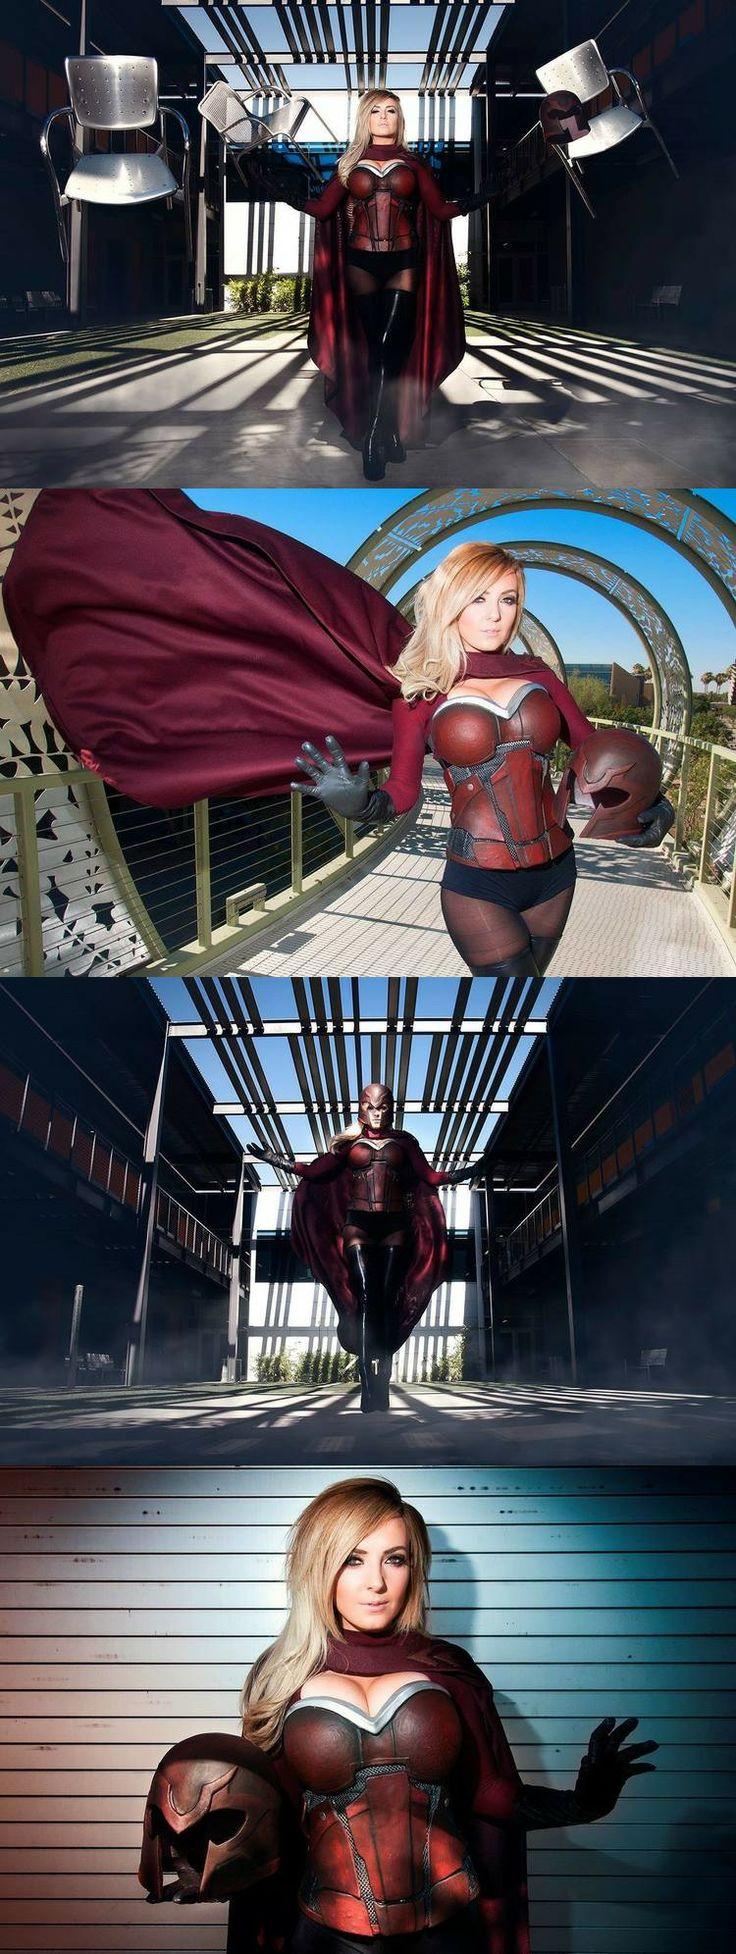 Jessica Nigri as Magneto makes bad look so good.